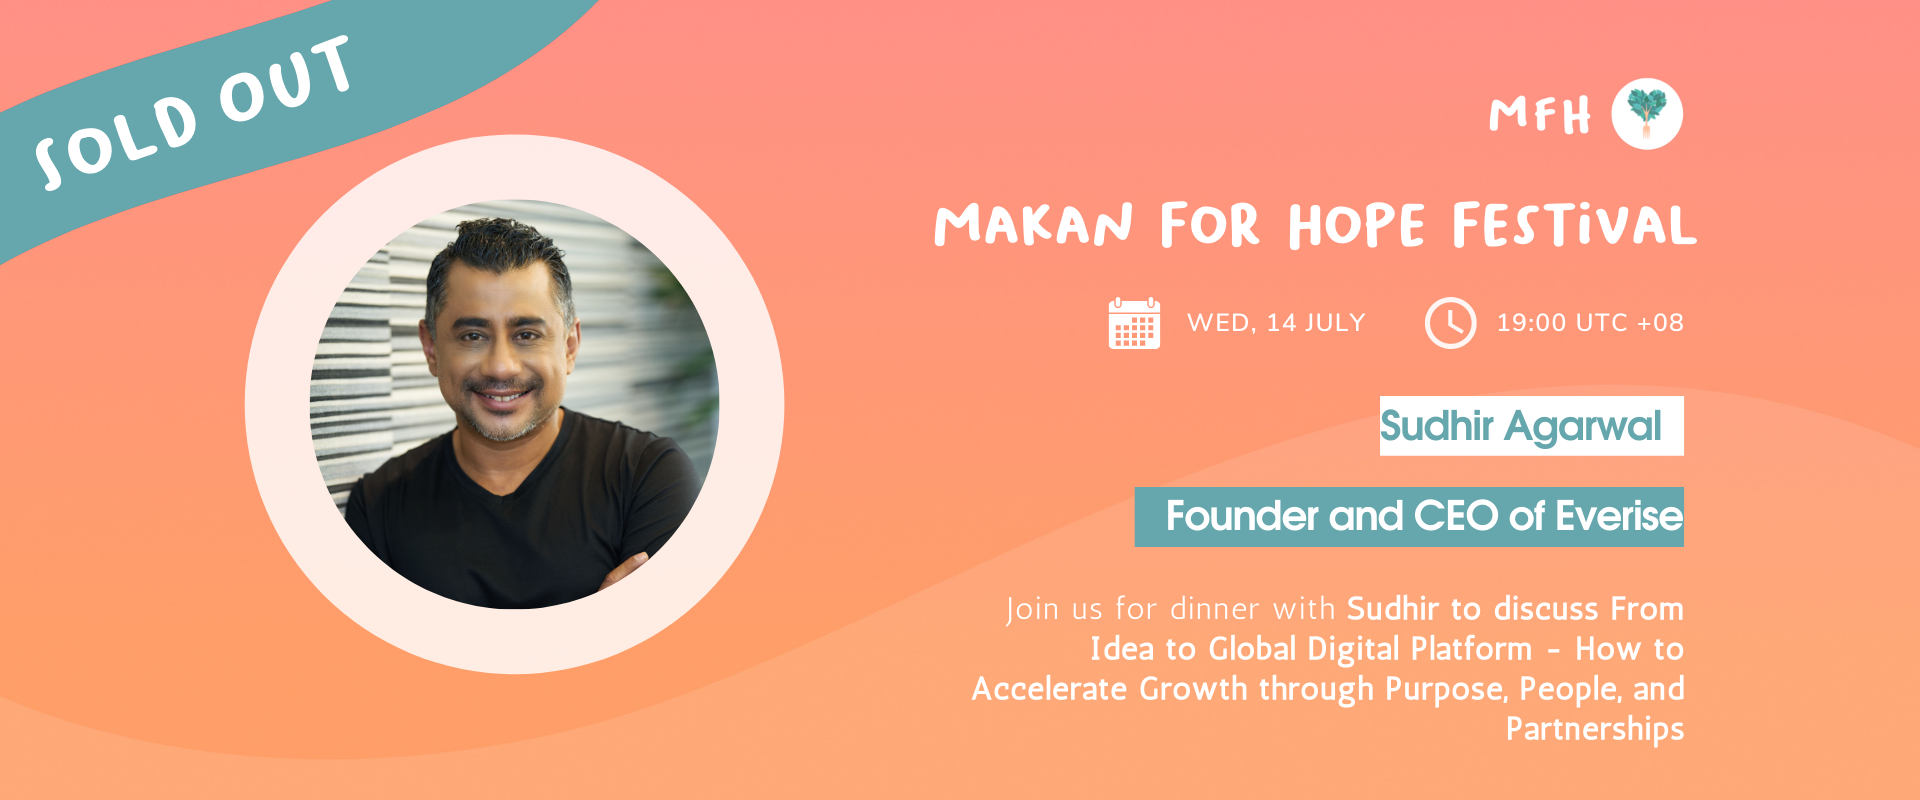 [SOLD OUT!] Sudhir Agarwal - The Entrepreneur's Toolkit: From Idea to Global Digital Platform - How to Accelerate Growth through Purpose, People... Banner Image